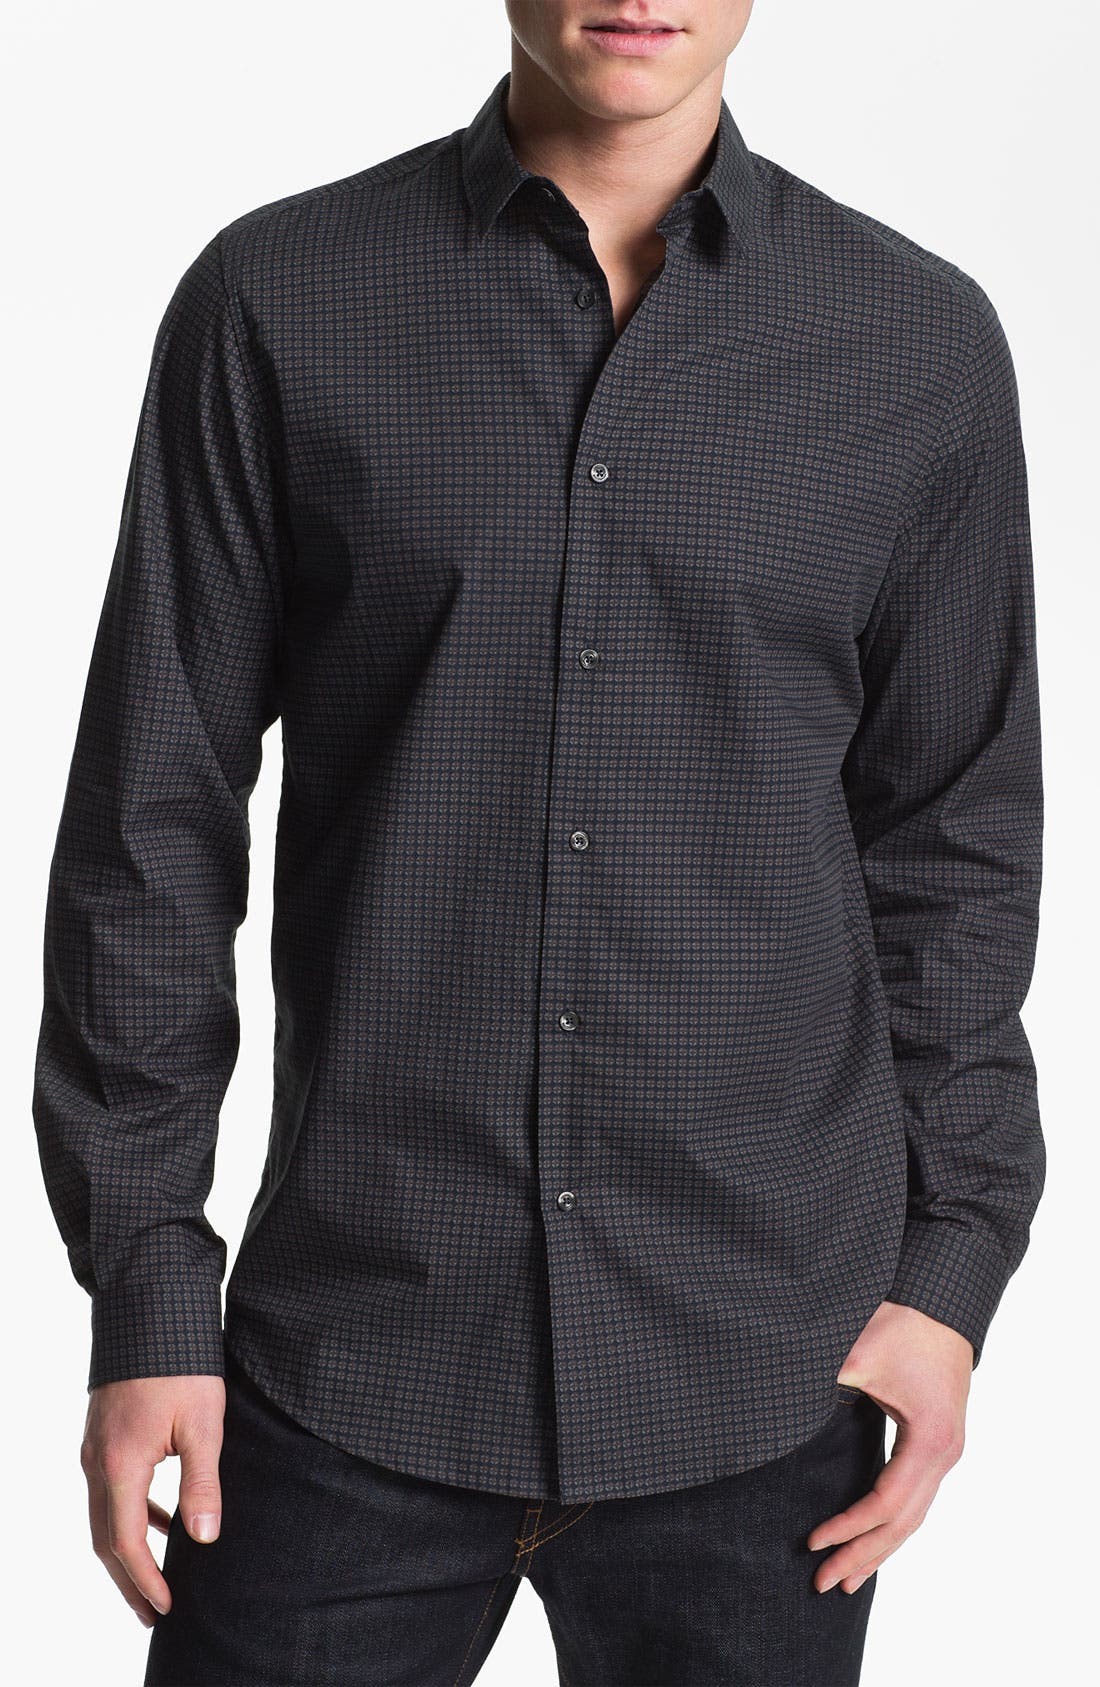 Alternate Image 1 Selected - Ben Sherman 'Kensington' Woven Shirt